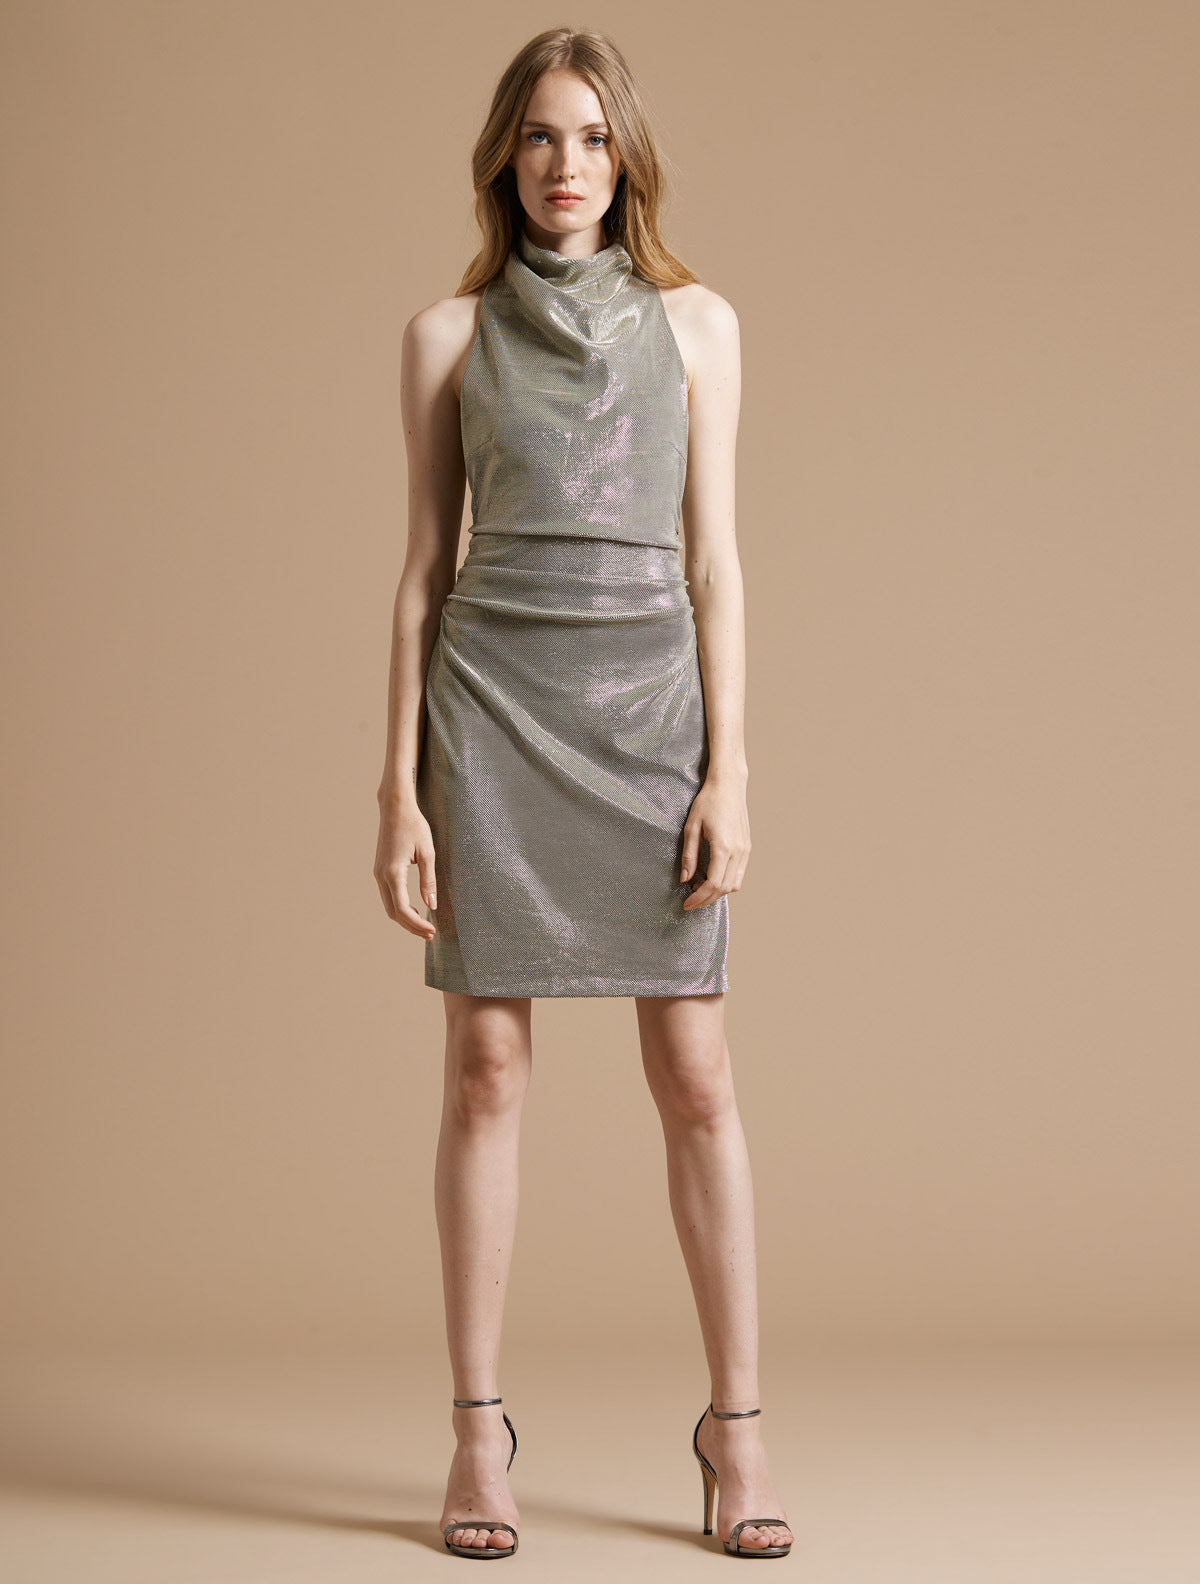 Draped Mock Neck Metallic Knit Dress - Halston